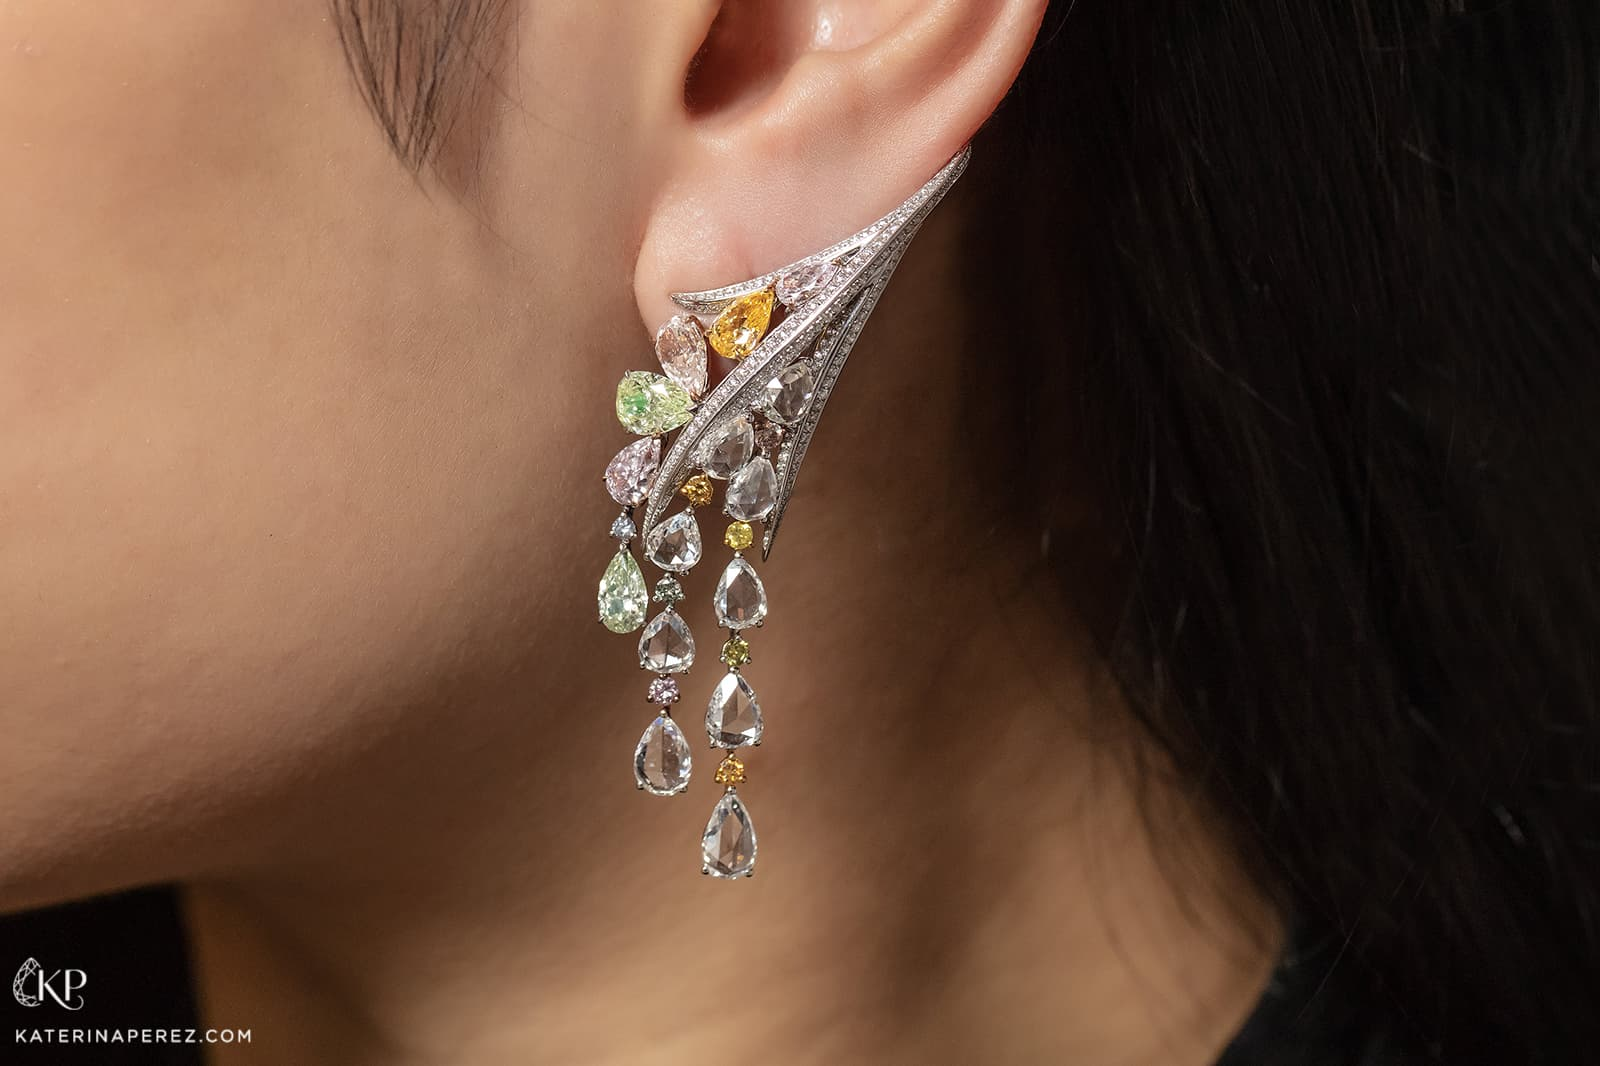 Novel Fine Jewelry earrings with fancy coloured diamonds and colourless diamonds set in white gold